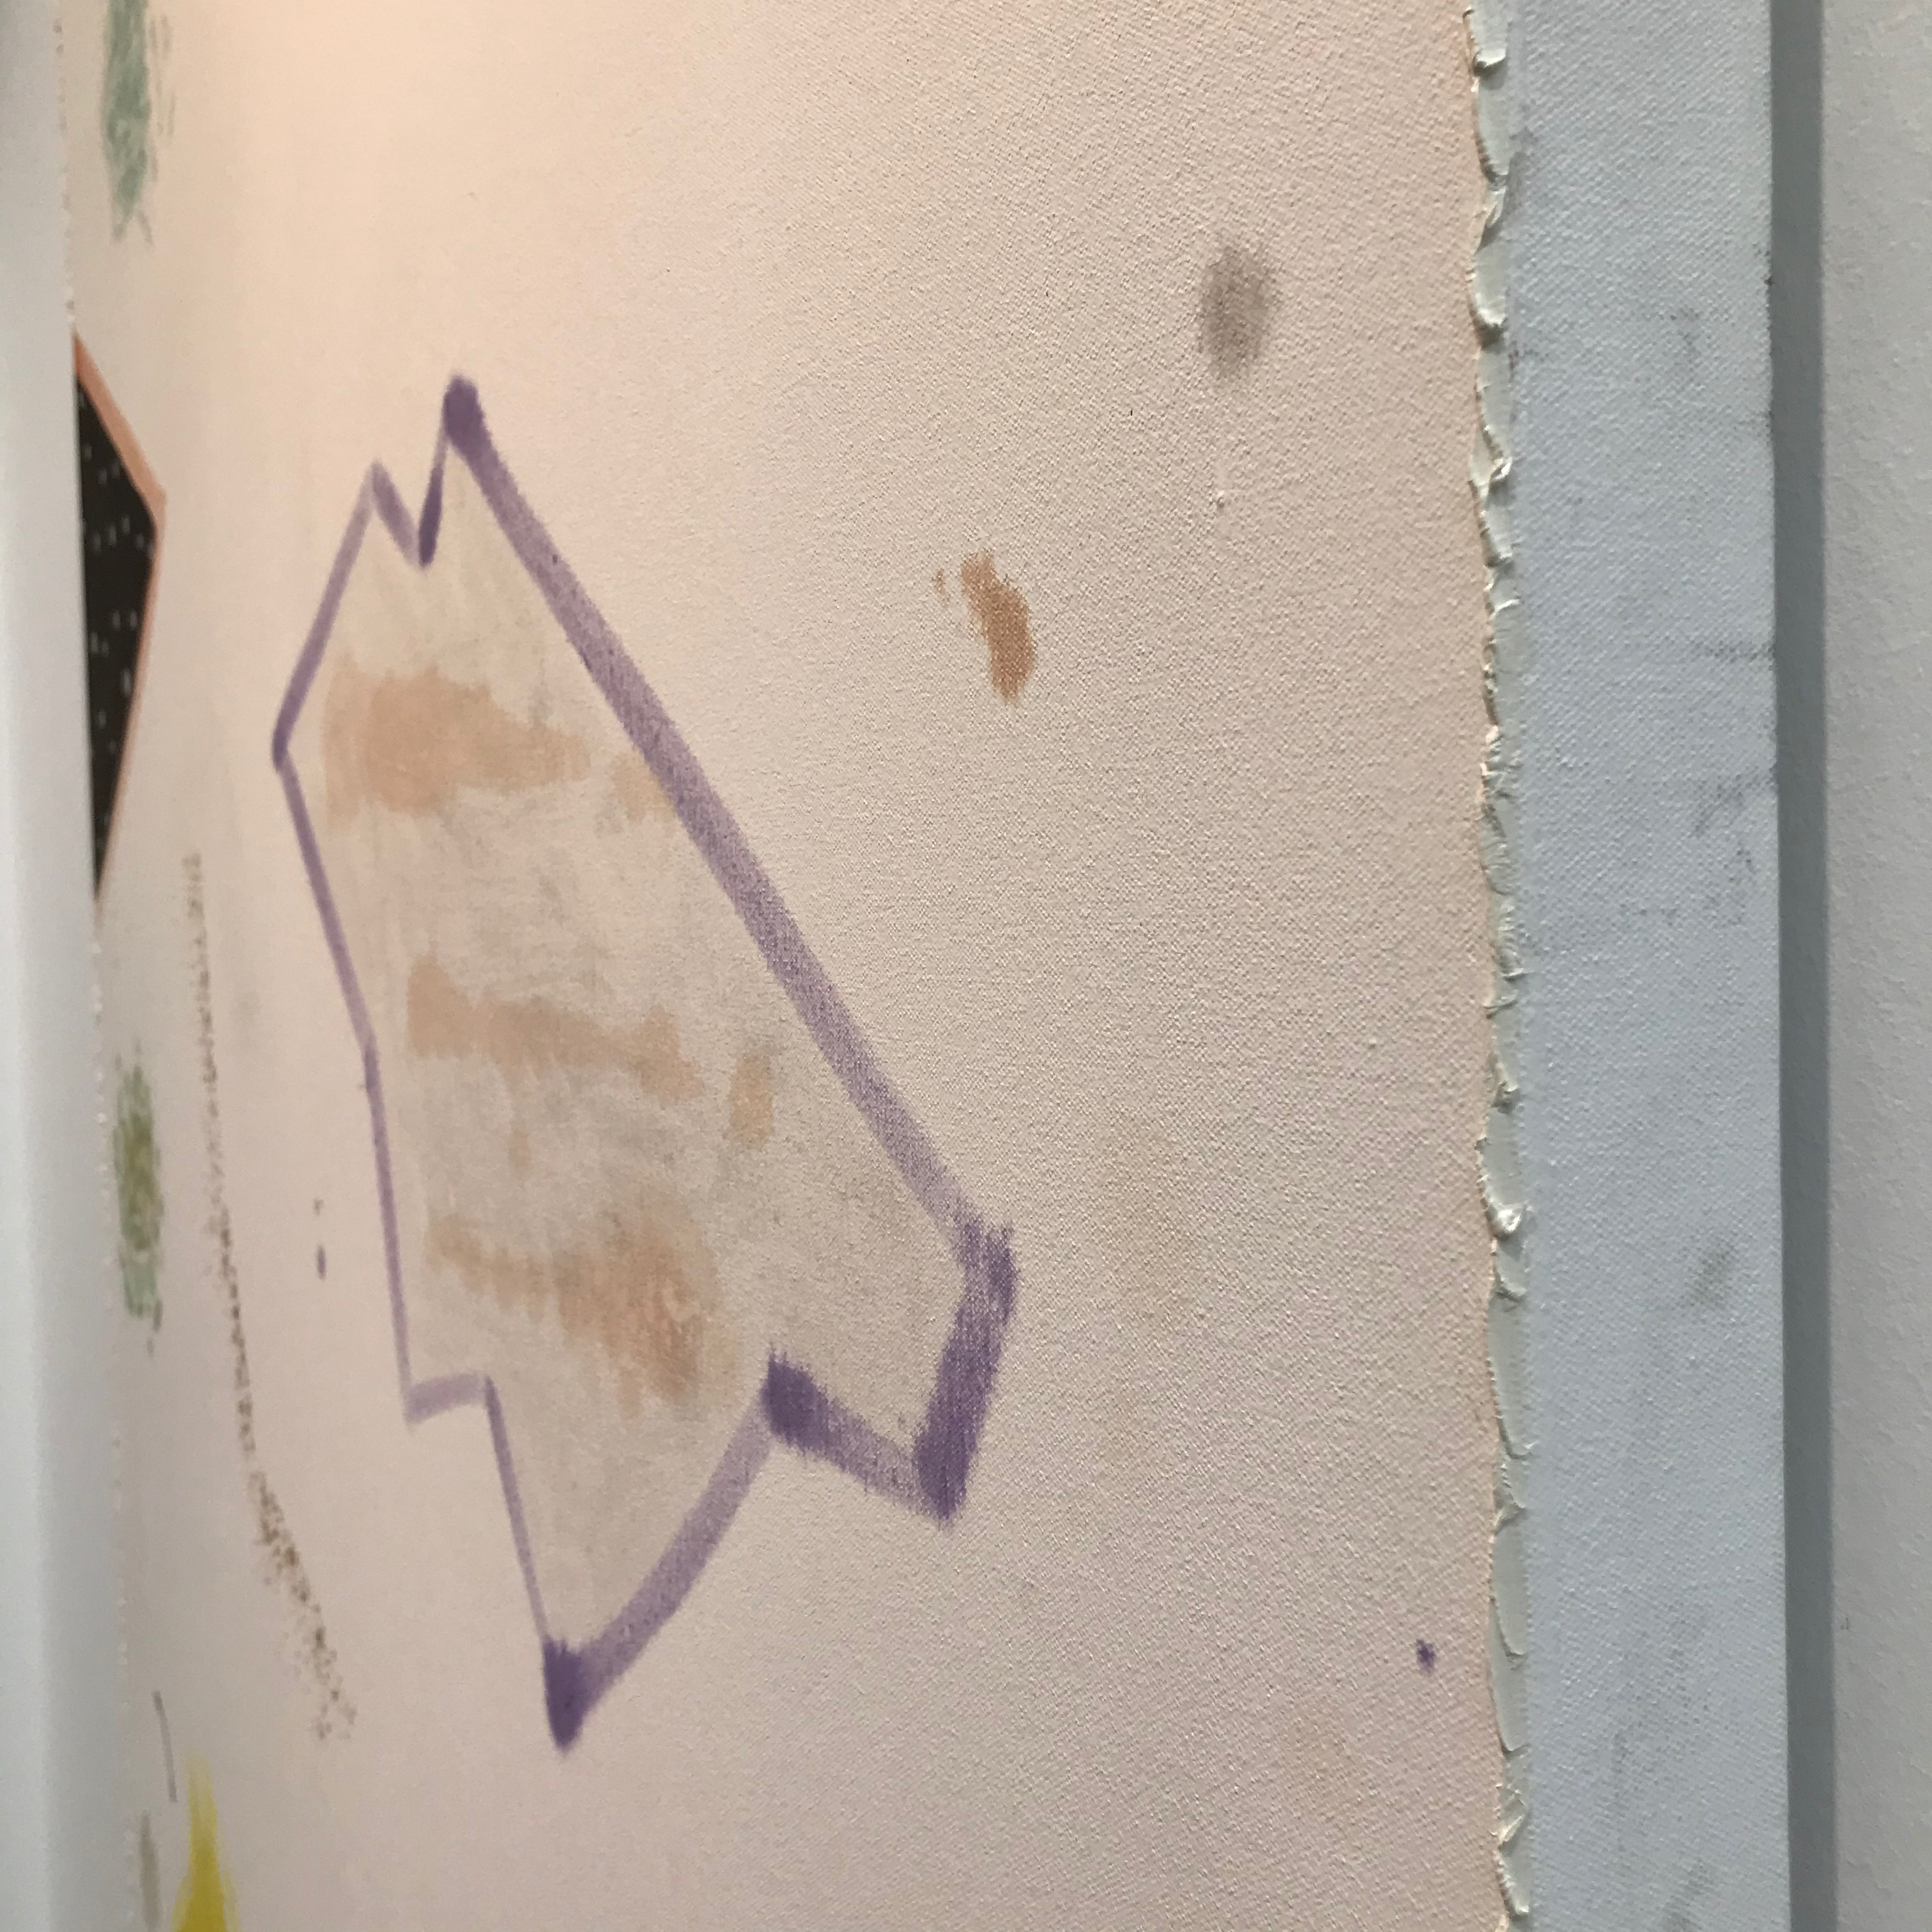 work by Rebecca Morris shown by Galerie Barbara Weiss